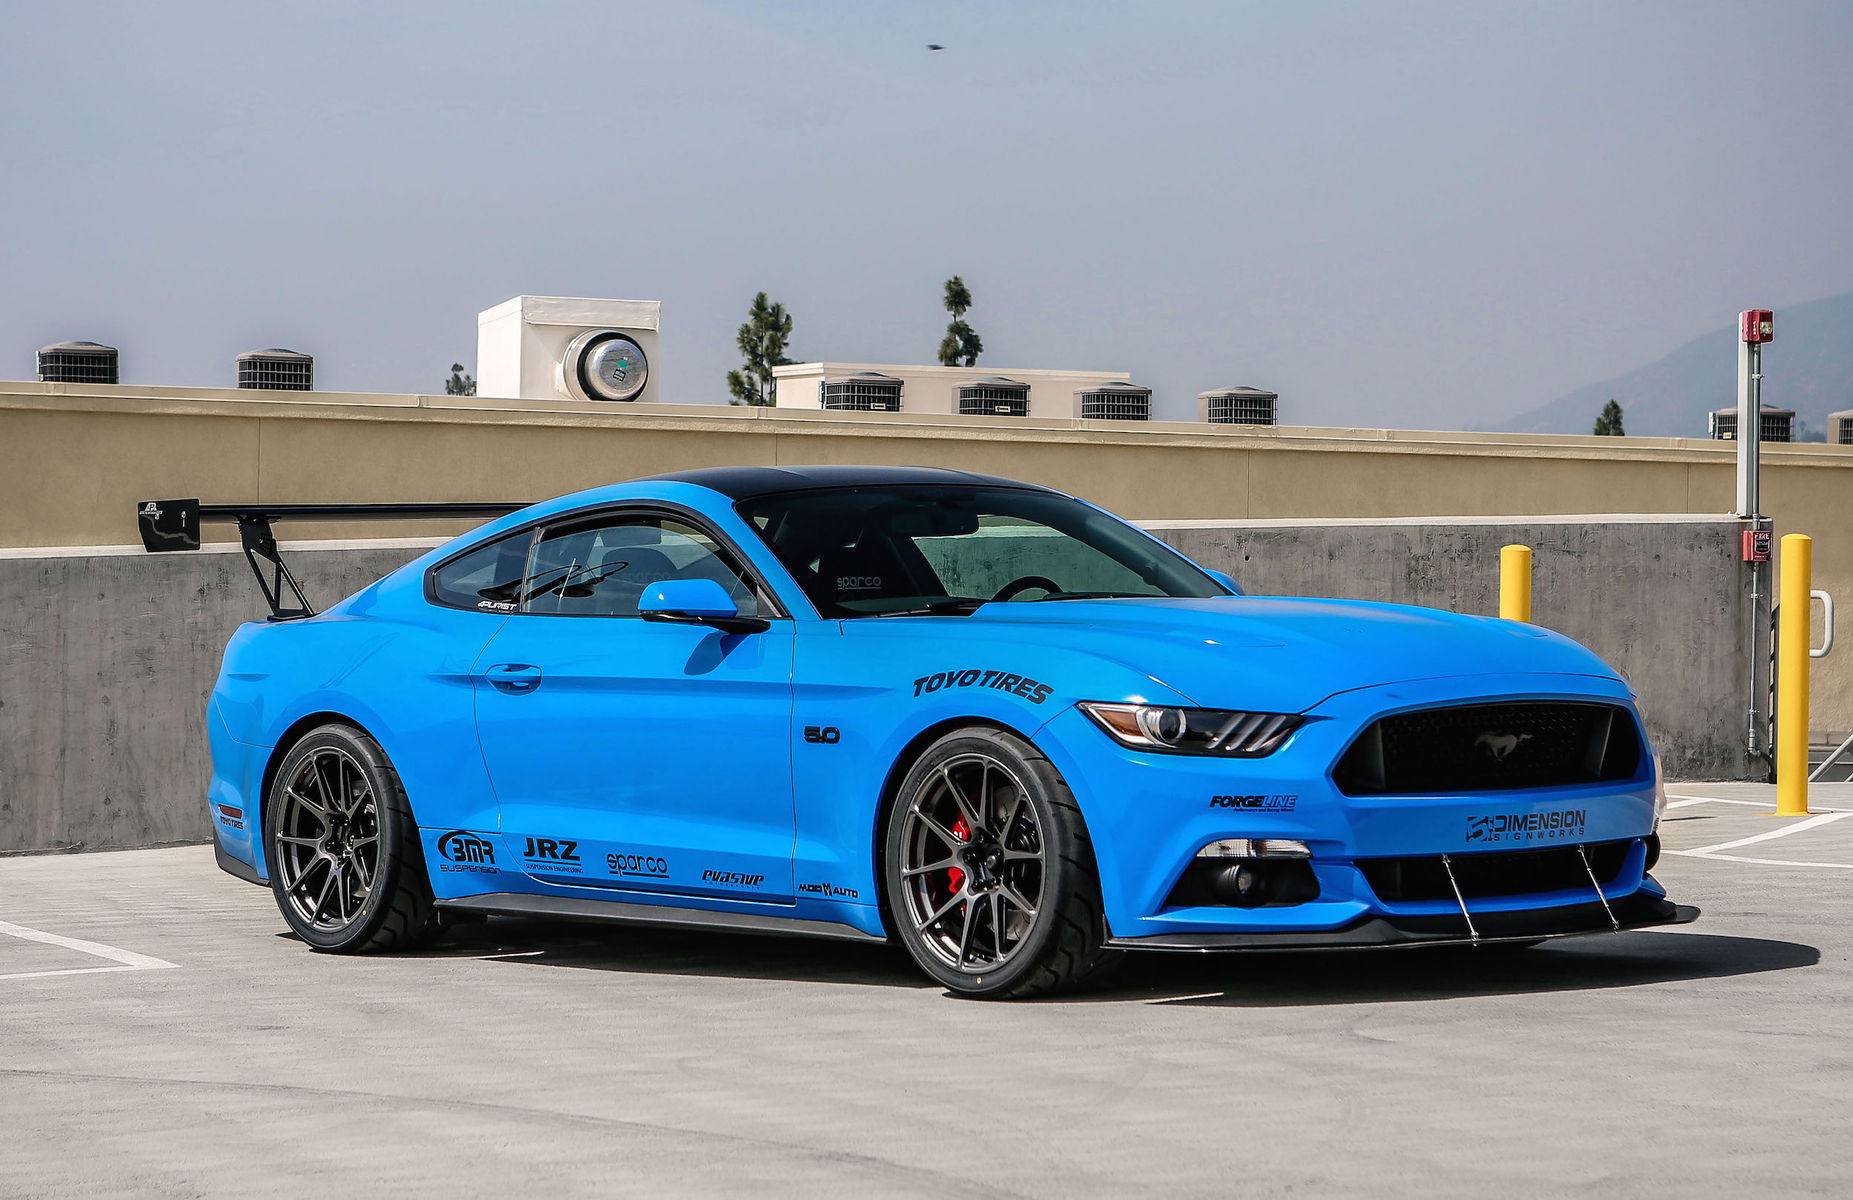 2015 Ford Mustang | Michael Chen's S550 Ford Mustang GT on Forgeline One Piece Forged Monoblock GA1R Open Lug Wheels